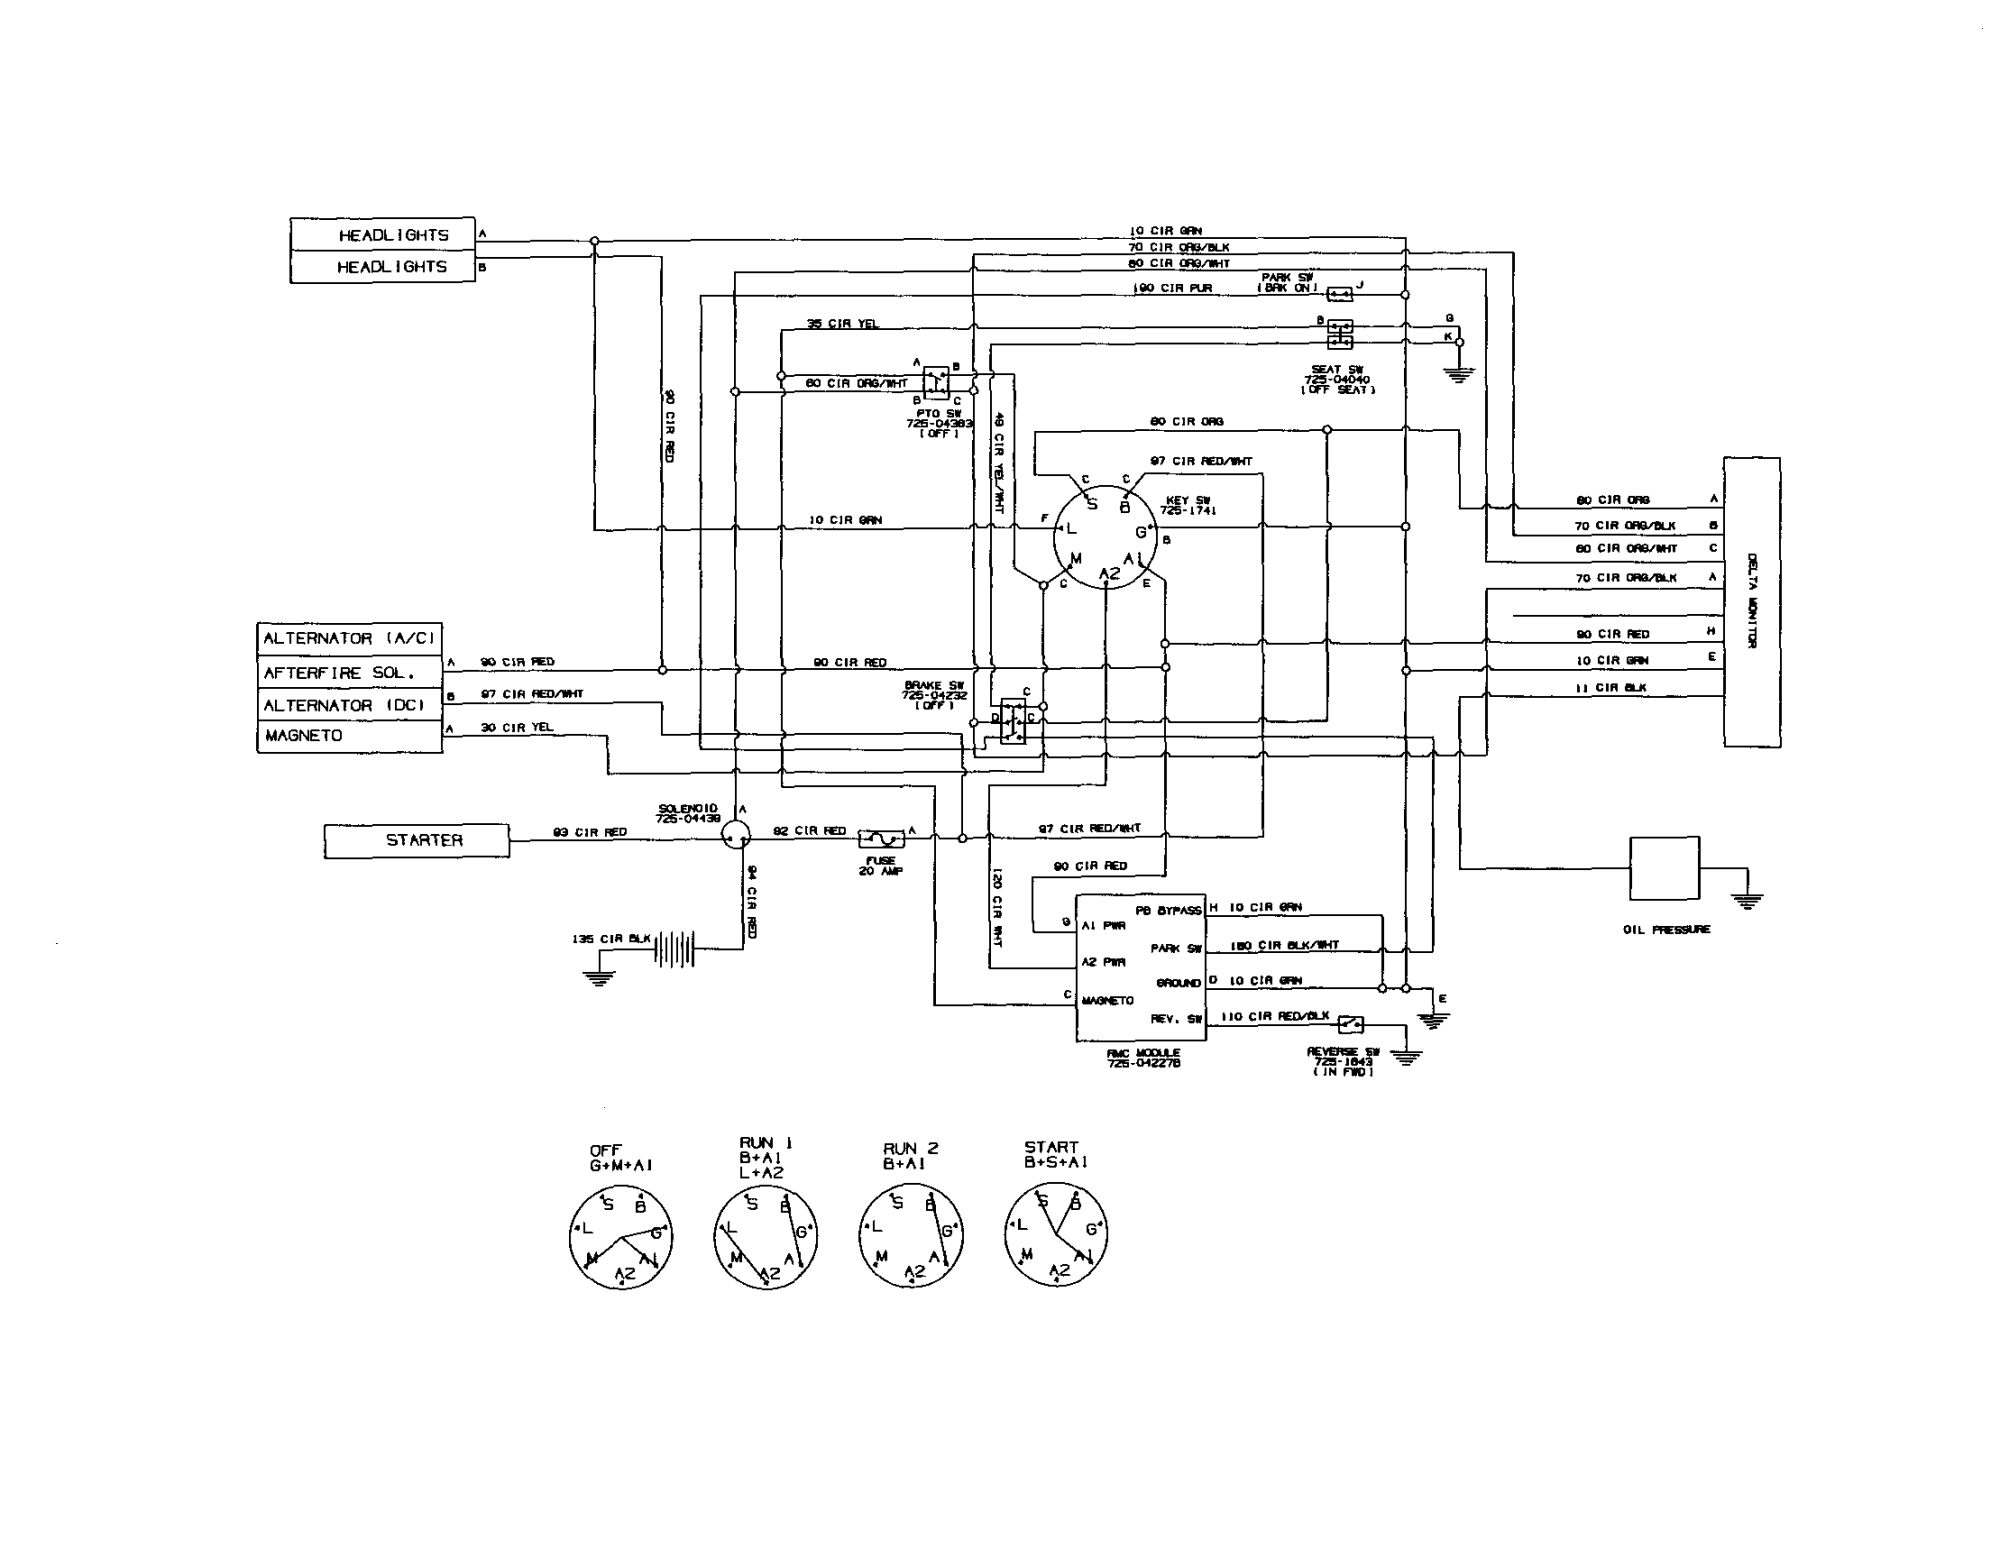 hight resolution of mtd wiring diagram manual trusted wiring diagram mtd garden tractor wiring diagram mtd wiring diagram manual